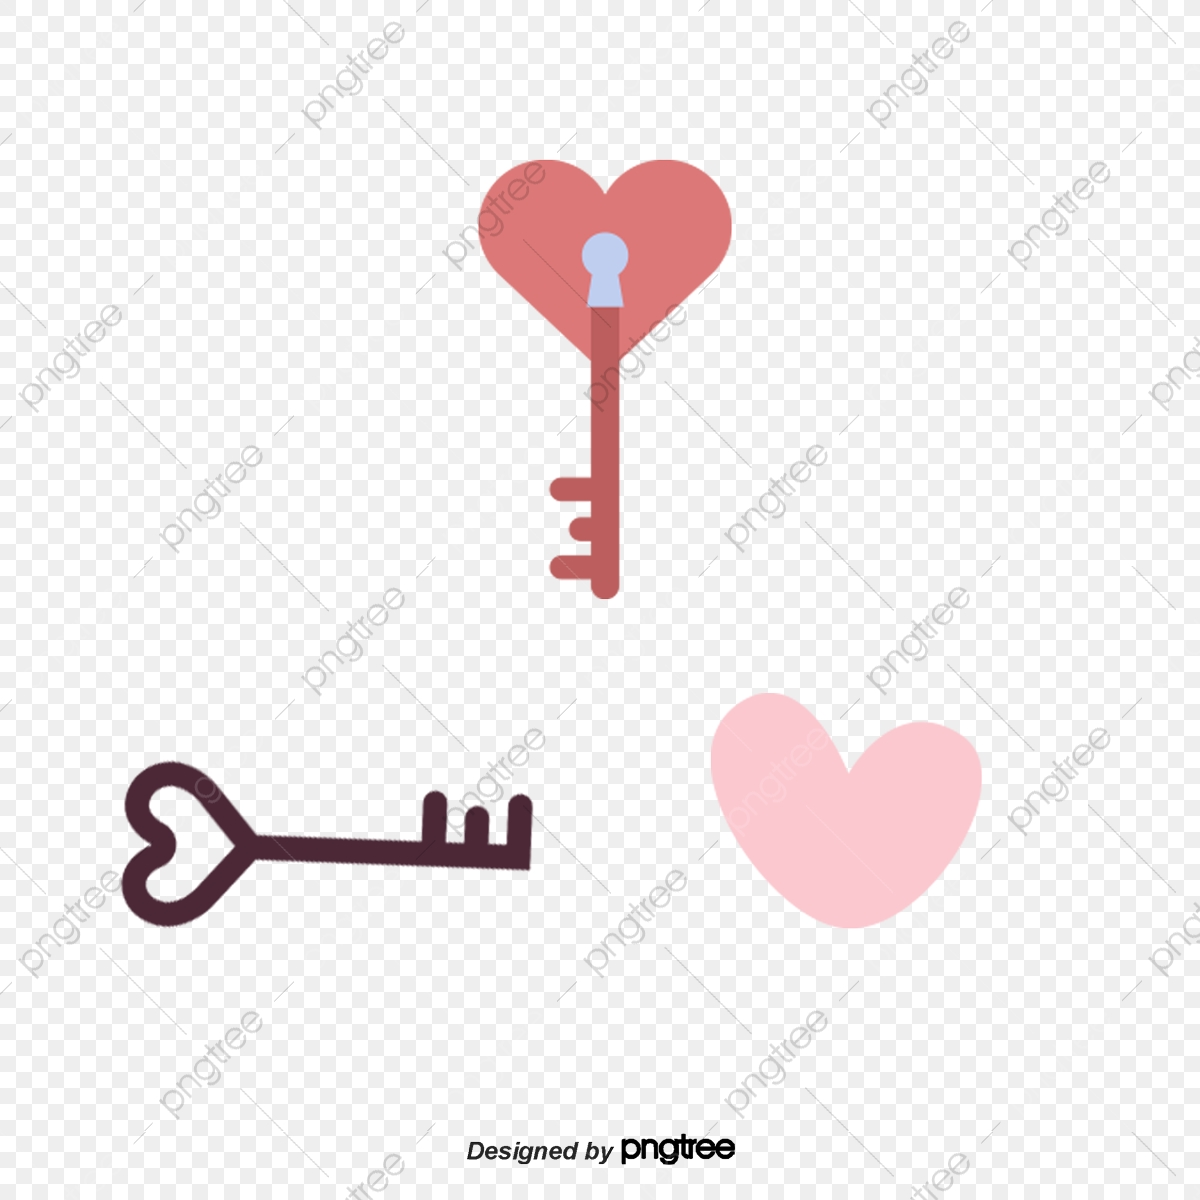 Cartoon cute lovely heart. Keys clipart pretty